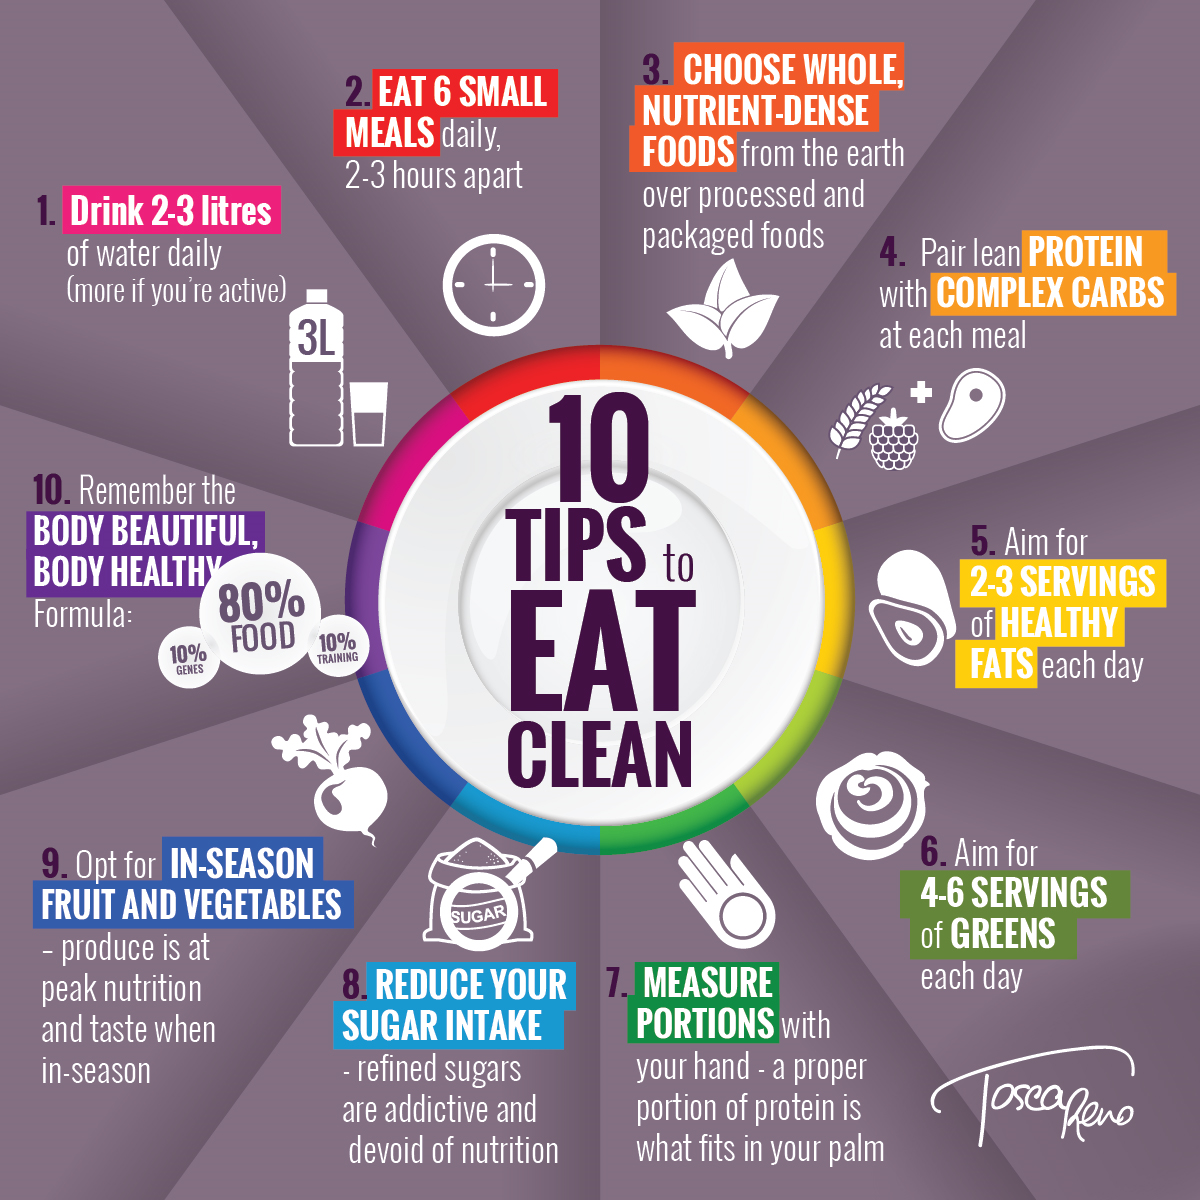 #EatingClean made simple!  Keep these 10 tips in mind the next time you're grocery shopping or planning a meal http://t.co/HP0rgFxwWI